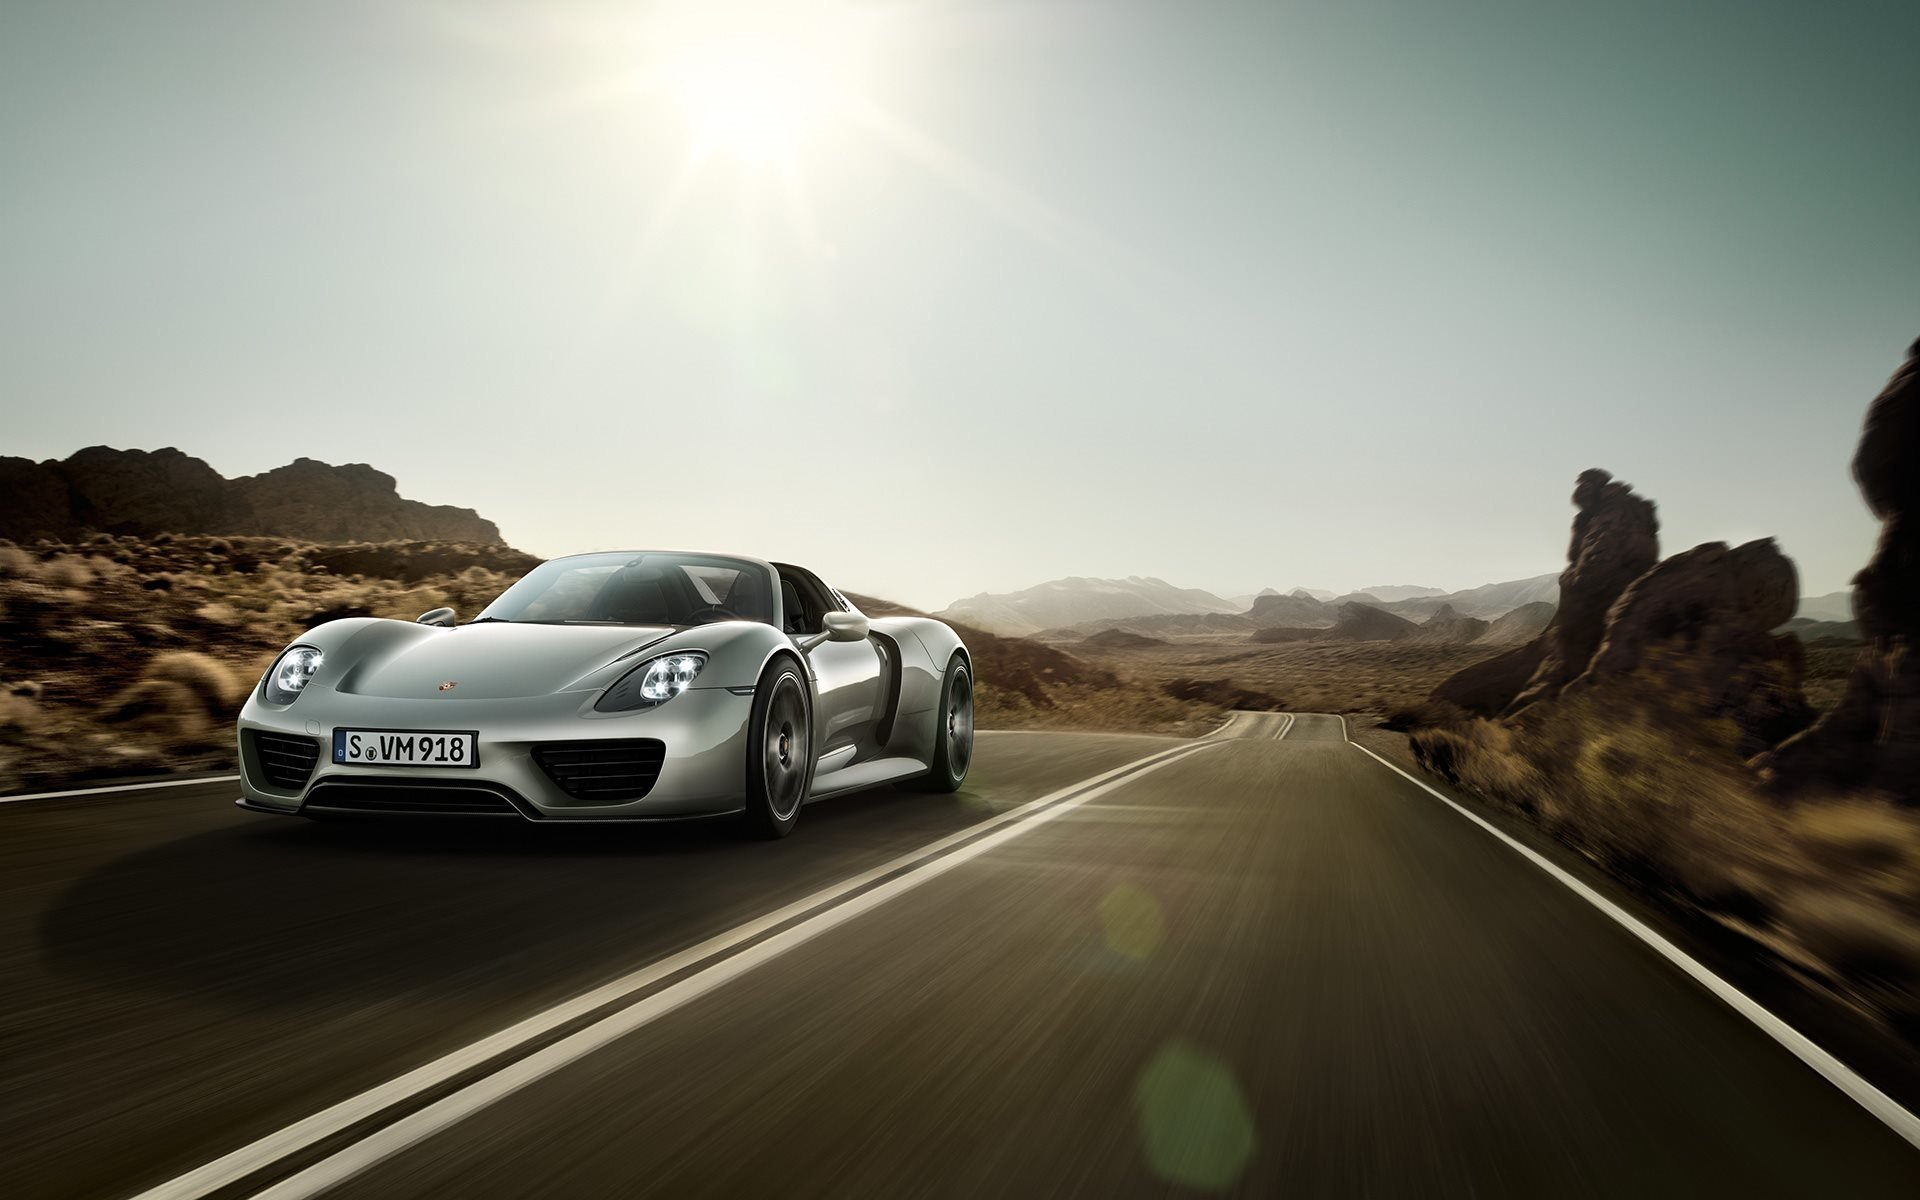 porsche 918 spyder sport car hd wallpaper background id549953 - Porsche 918 Spyder Wallpaper